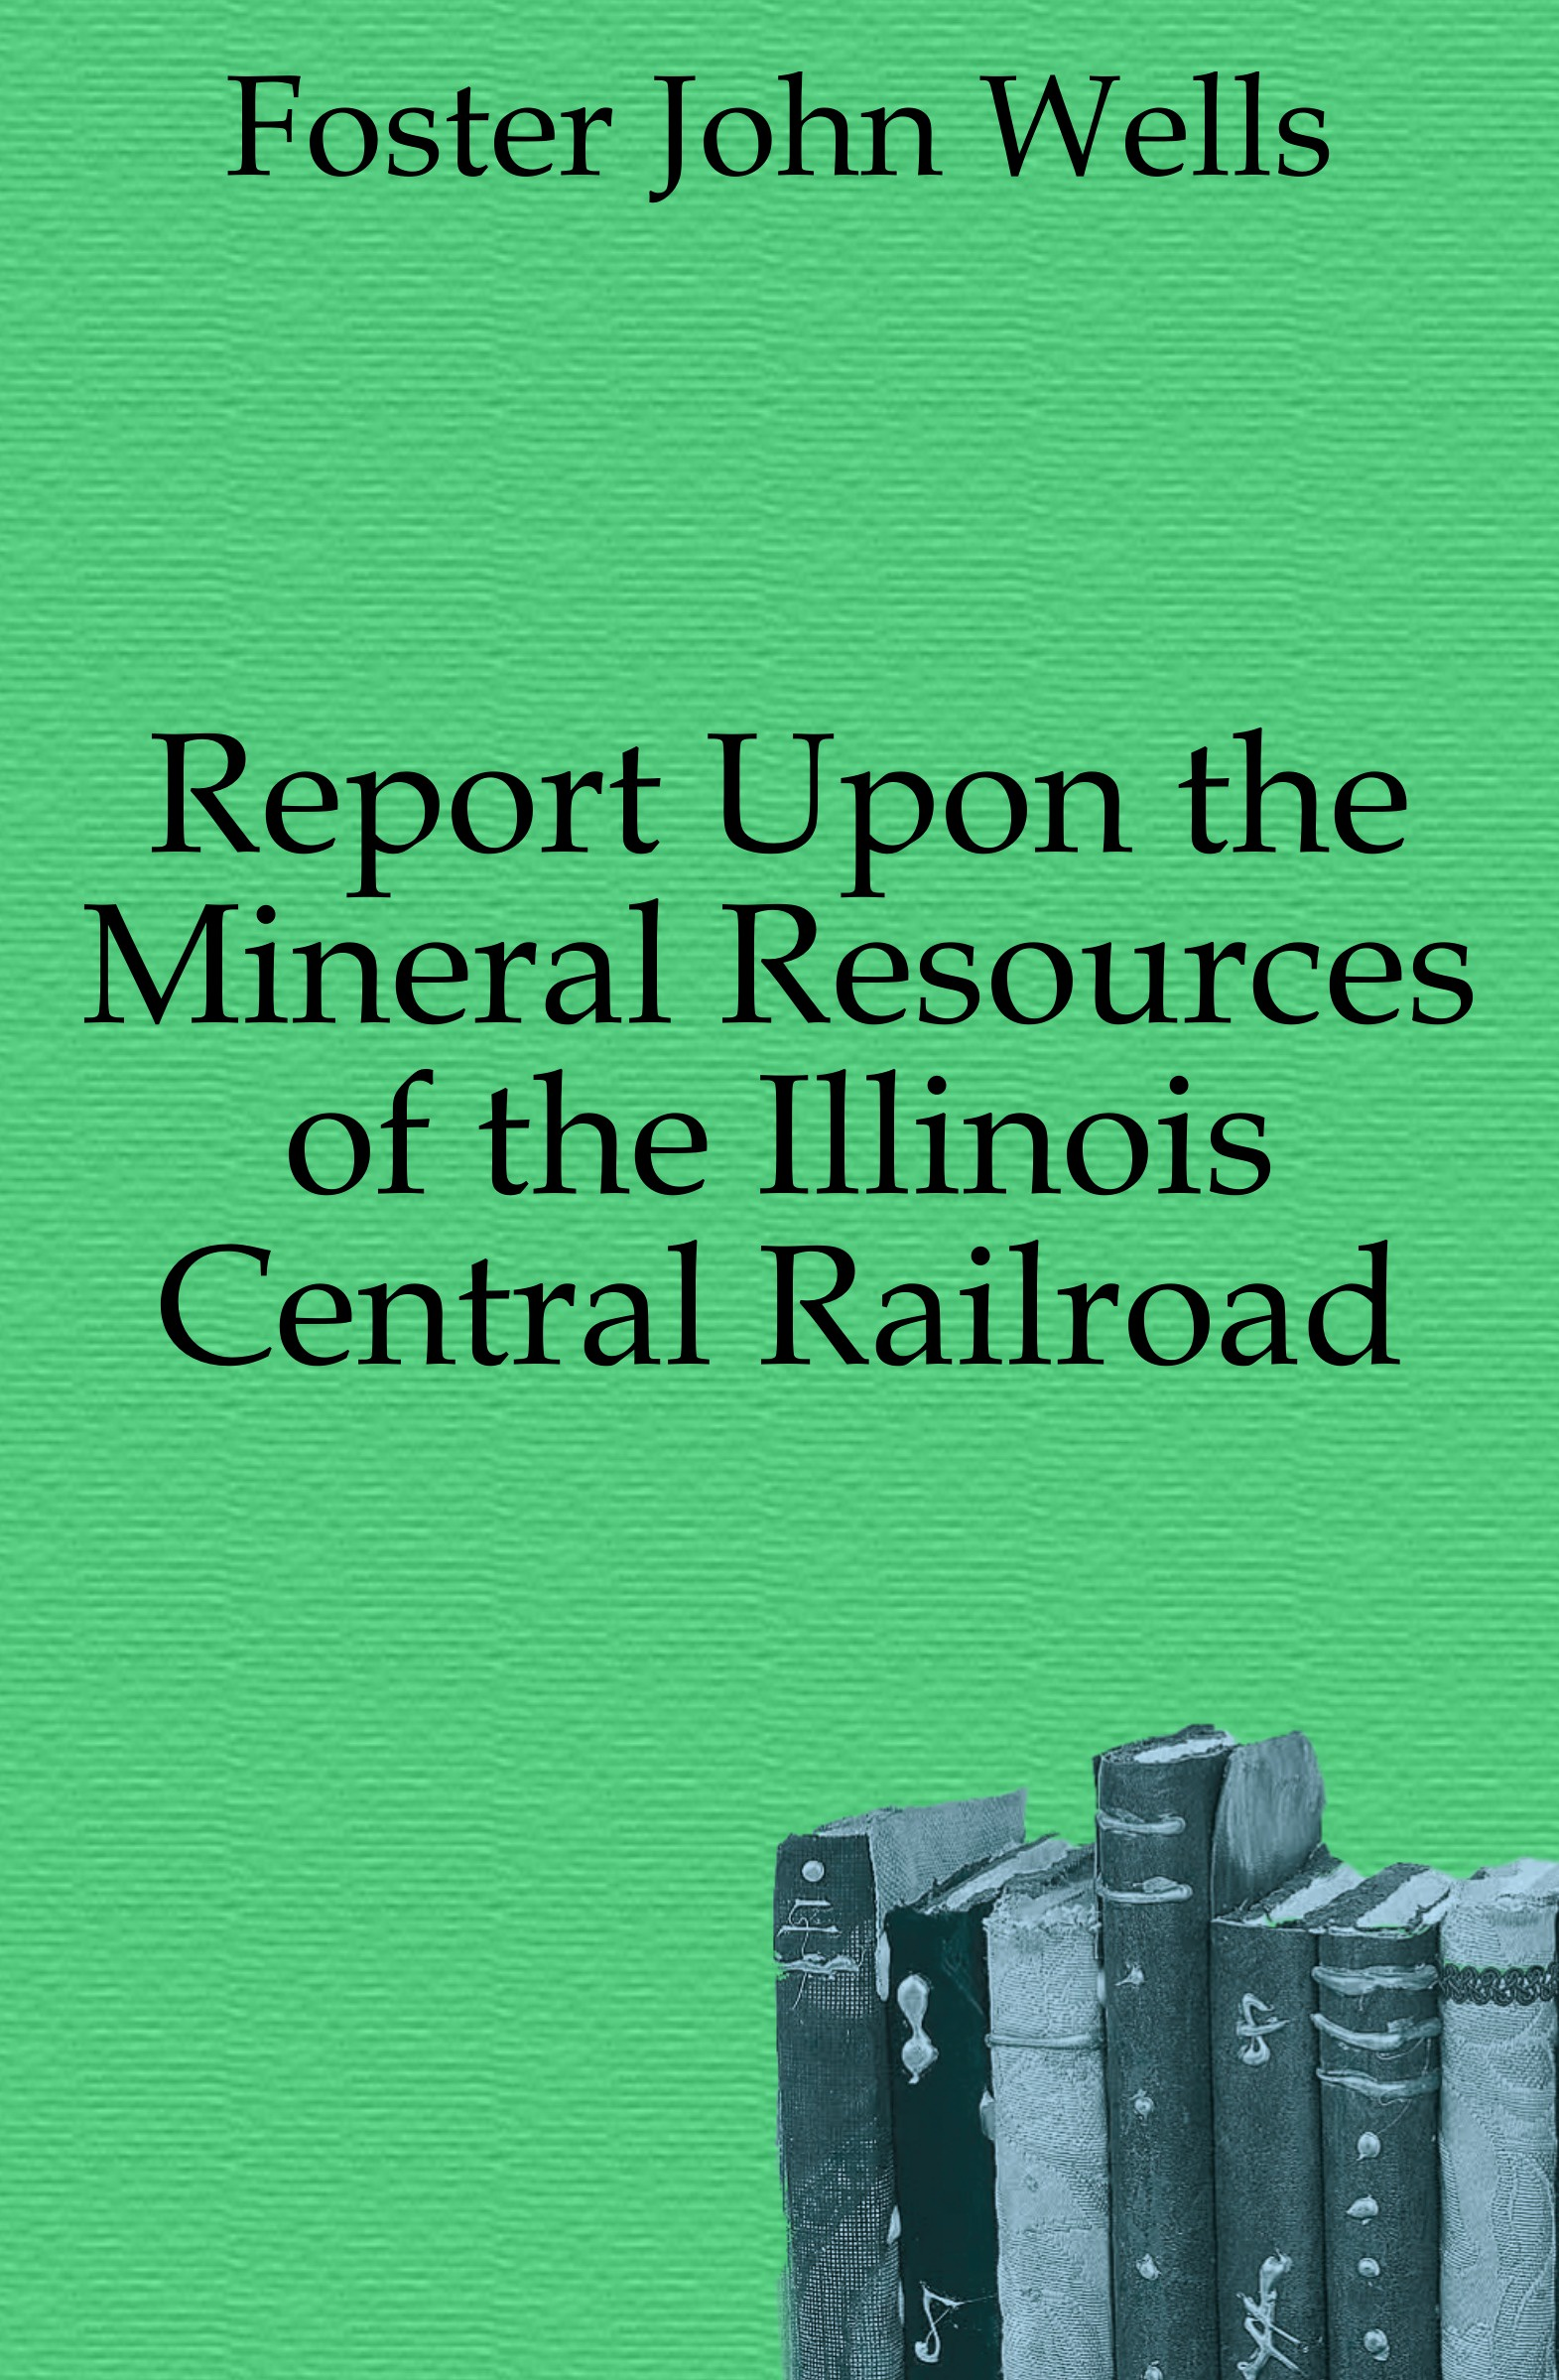 Foster John Wells Report Upon the Mineral Resources of the Illinois Central Railroad